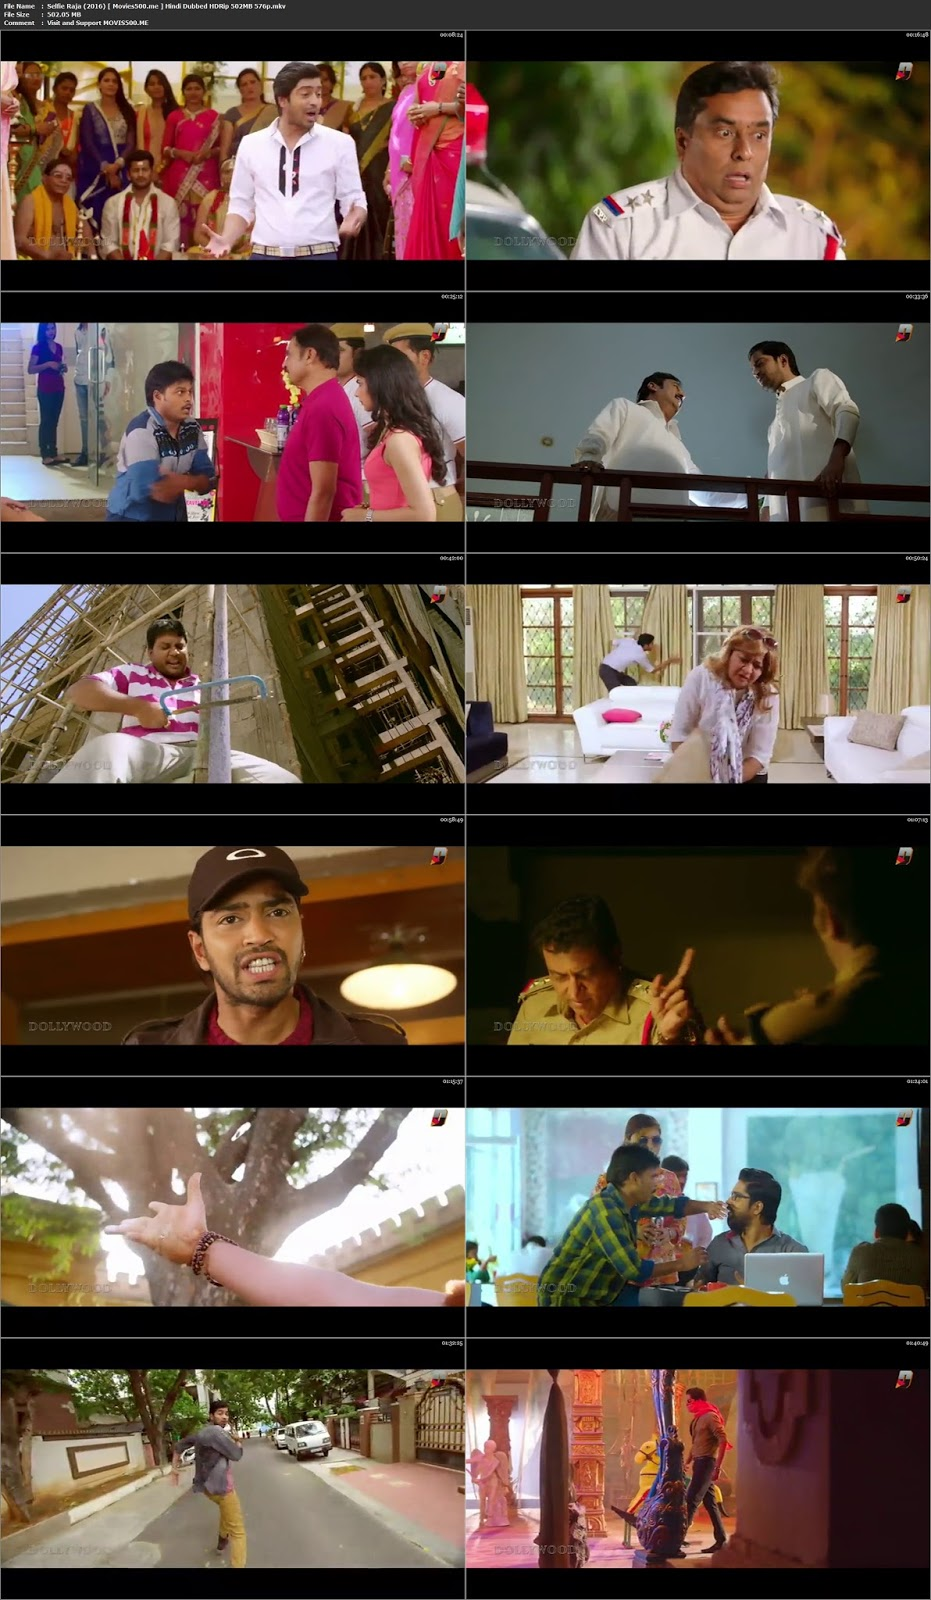 Selfie Raja 2016 Hindi Dubbed HDRip 502MB 576p